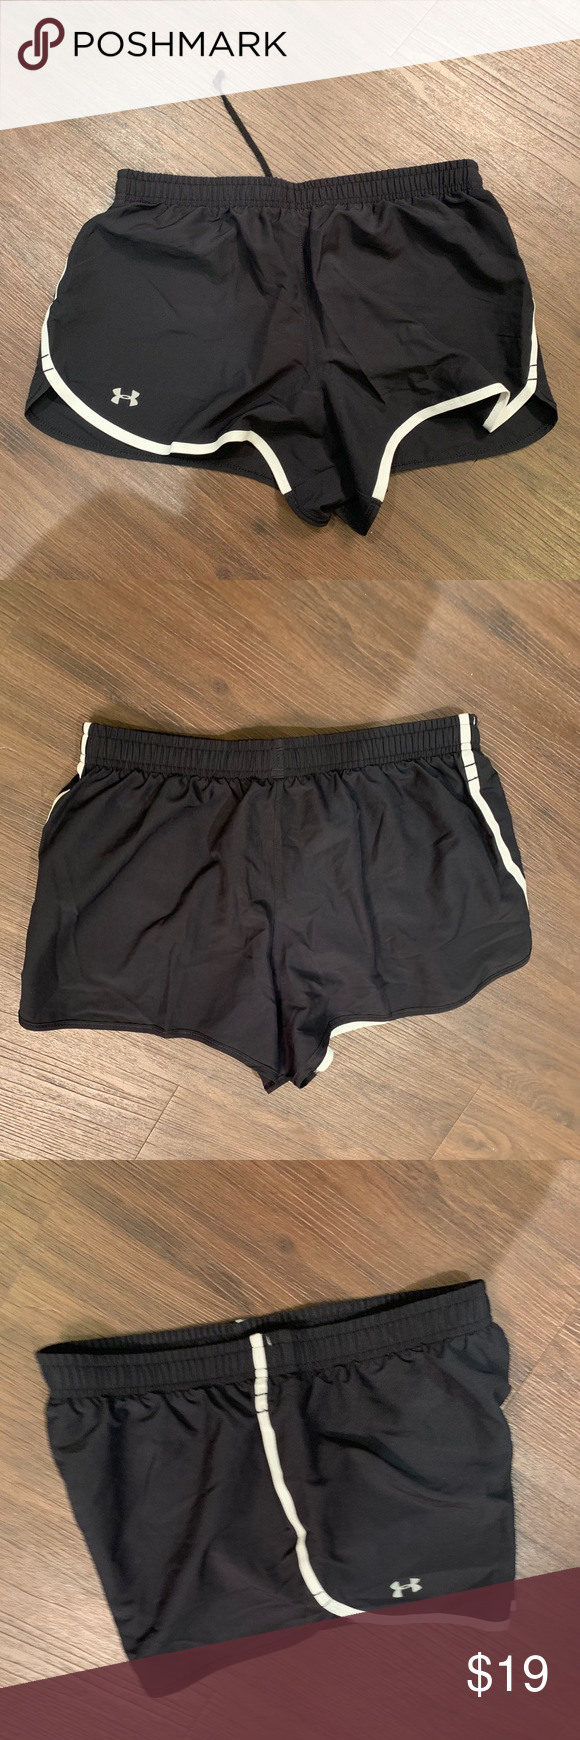 UNDER ARMOUR INFANT BOYS SUPER SOFT HEATGEAR ADJUSTABLE WASTE BAND SHORTS C SZ/'S